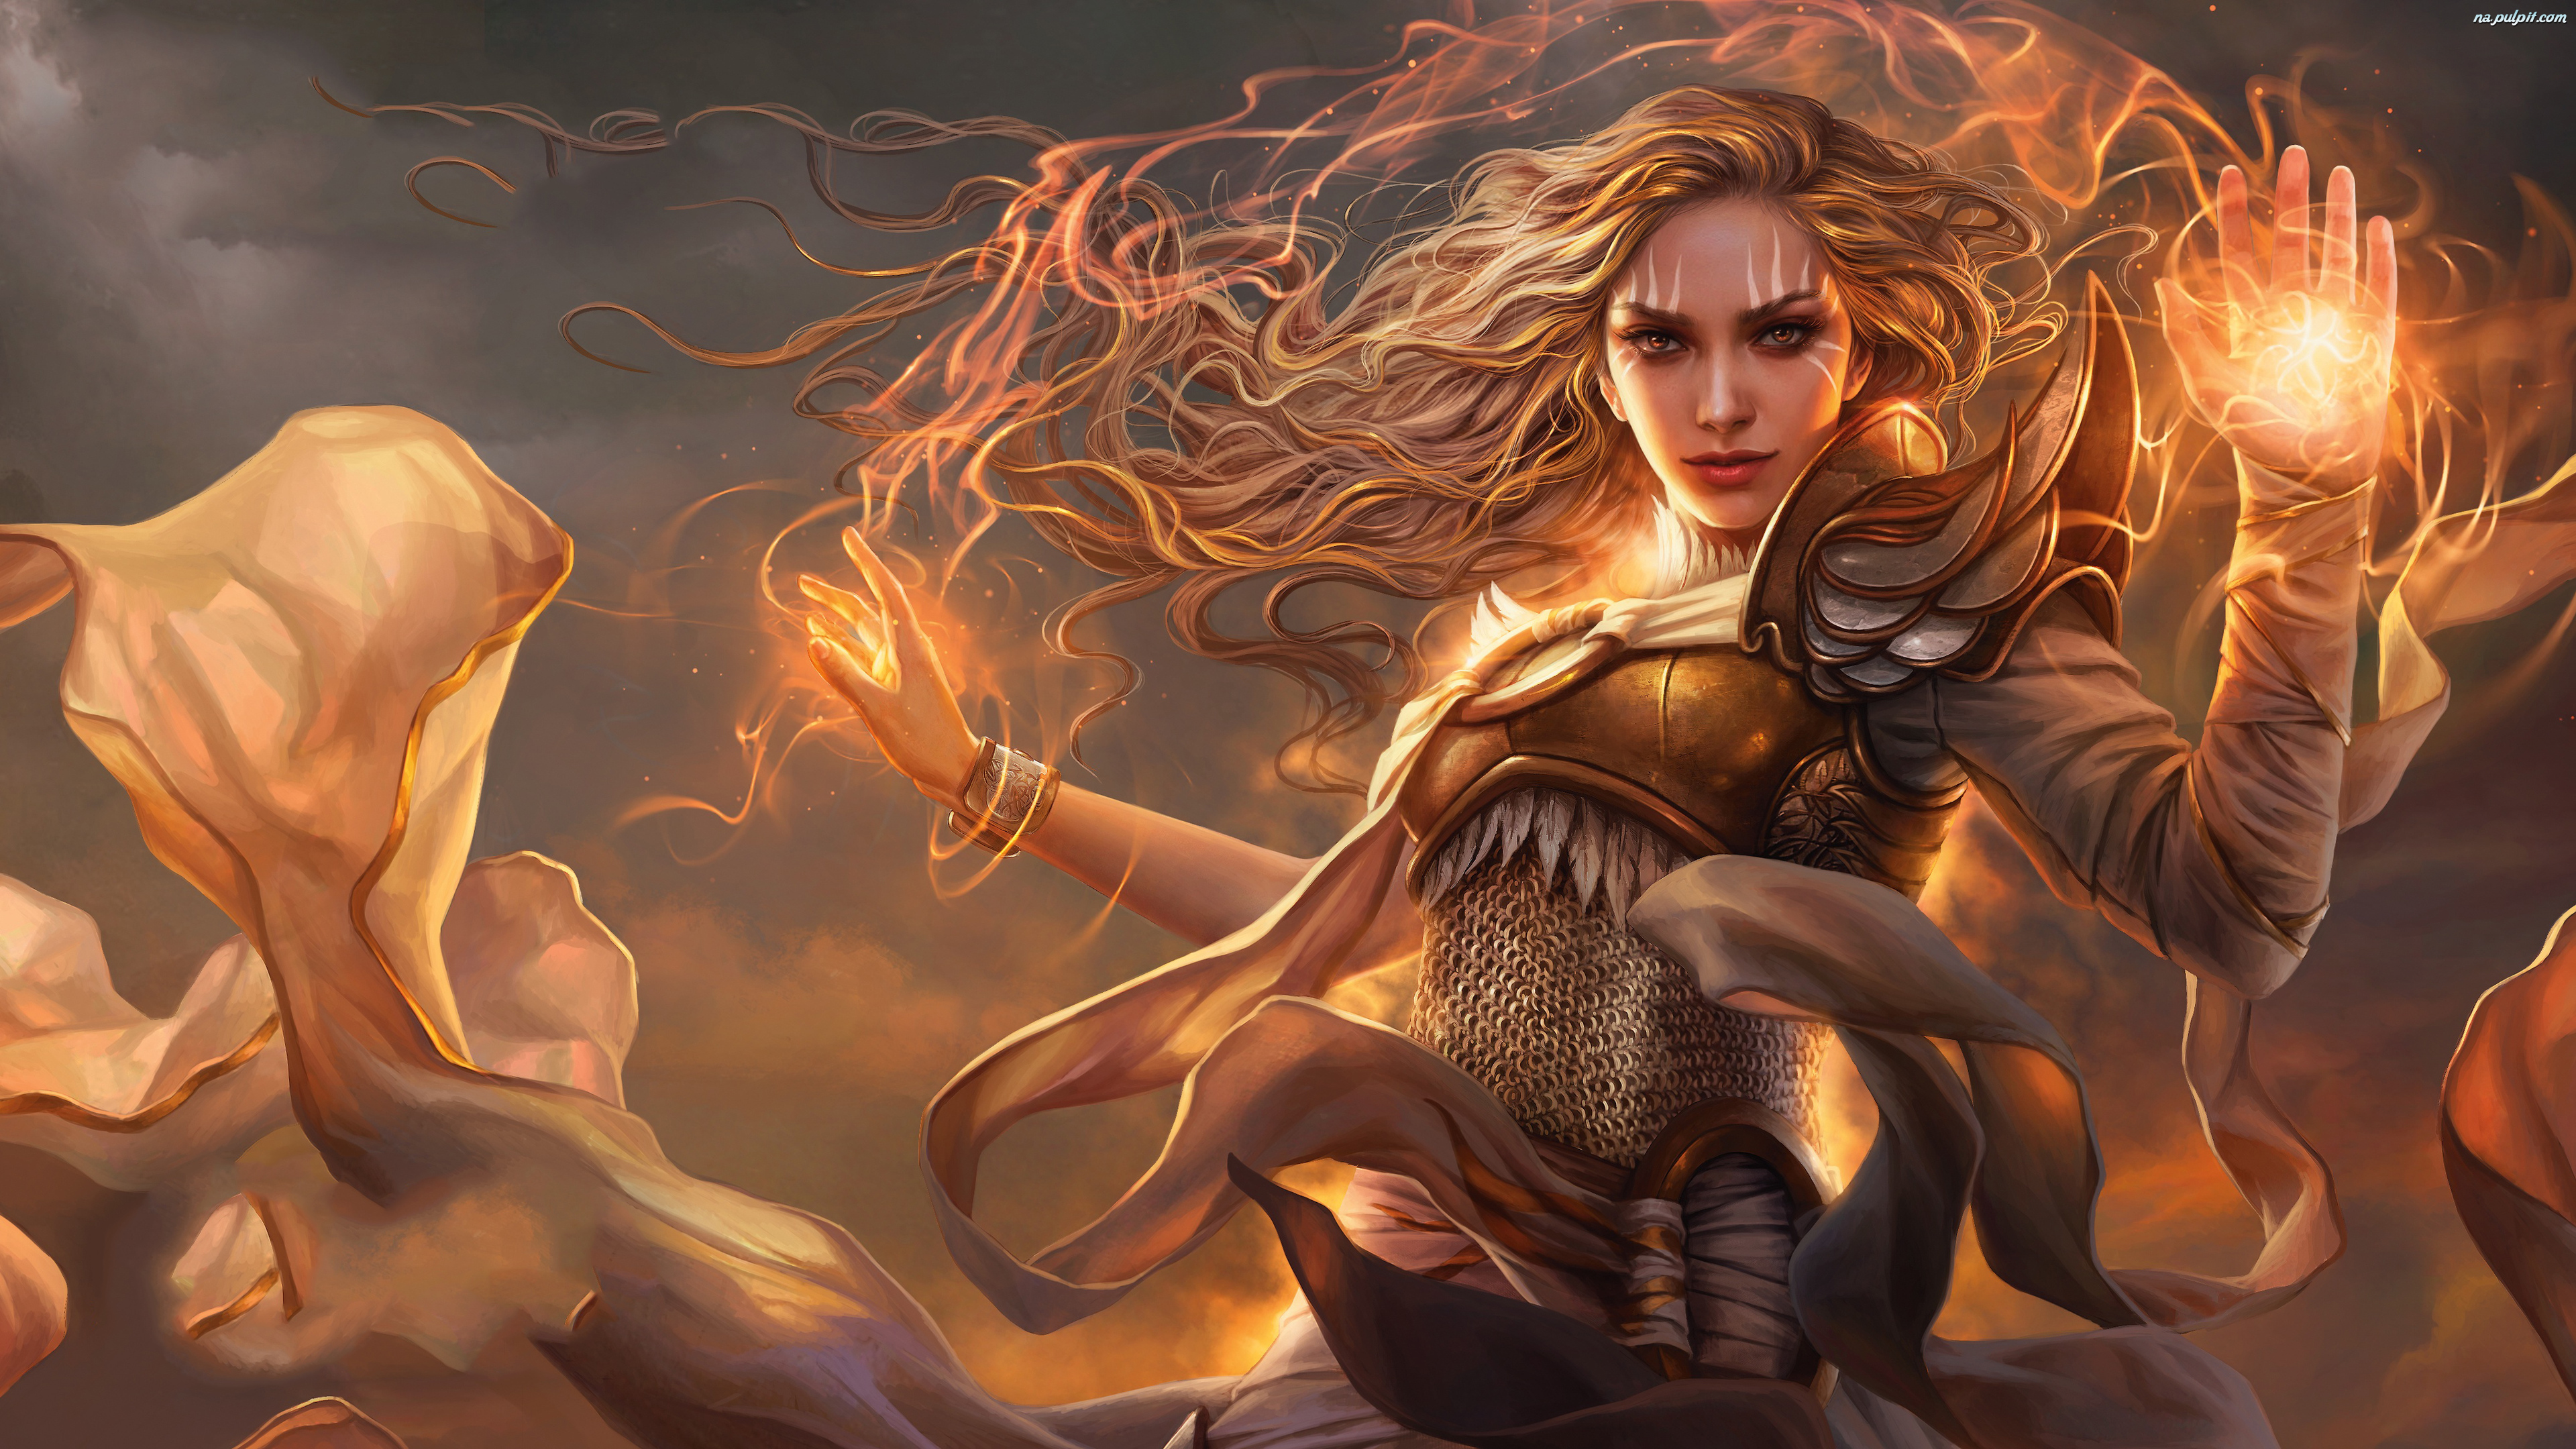 Serra the Benevolent, Karciana, Magic The Gathering, Kobieta, Fantasy, Modern Horizons, Gra, Karta